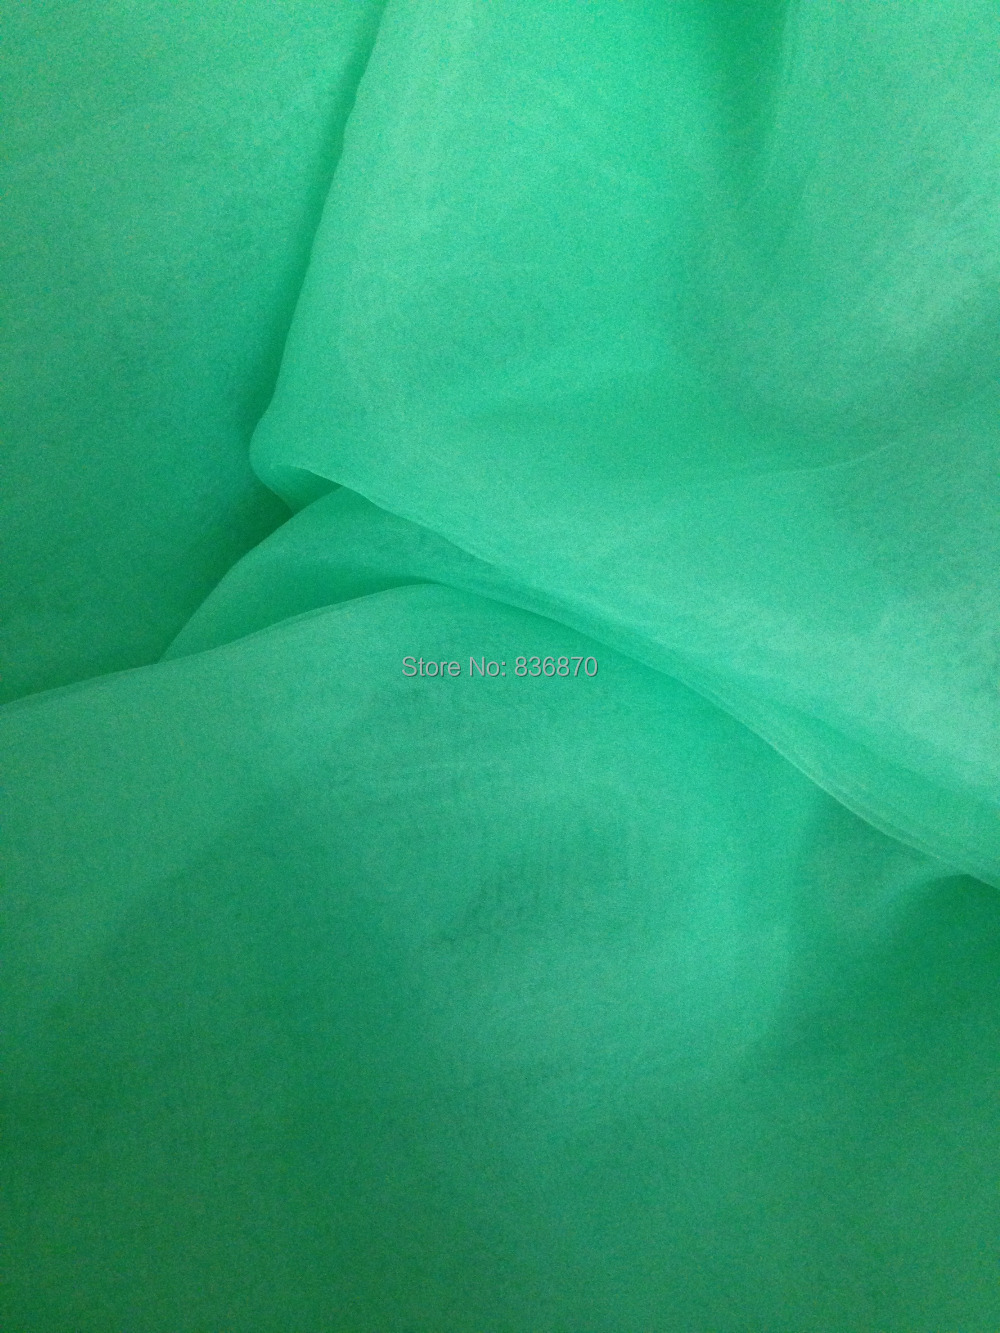 Mint Green Curtains Promotion Shop For Promotional Mint Green Curtains On